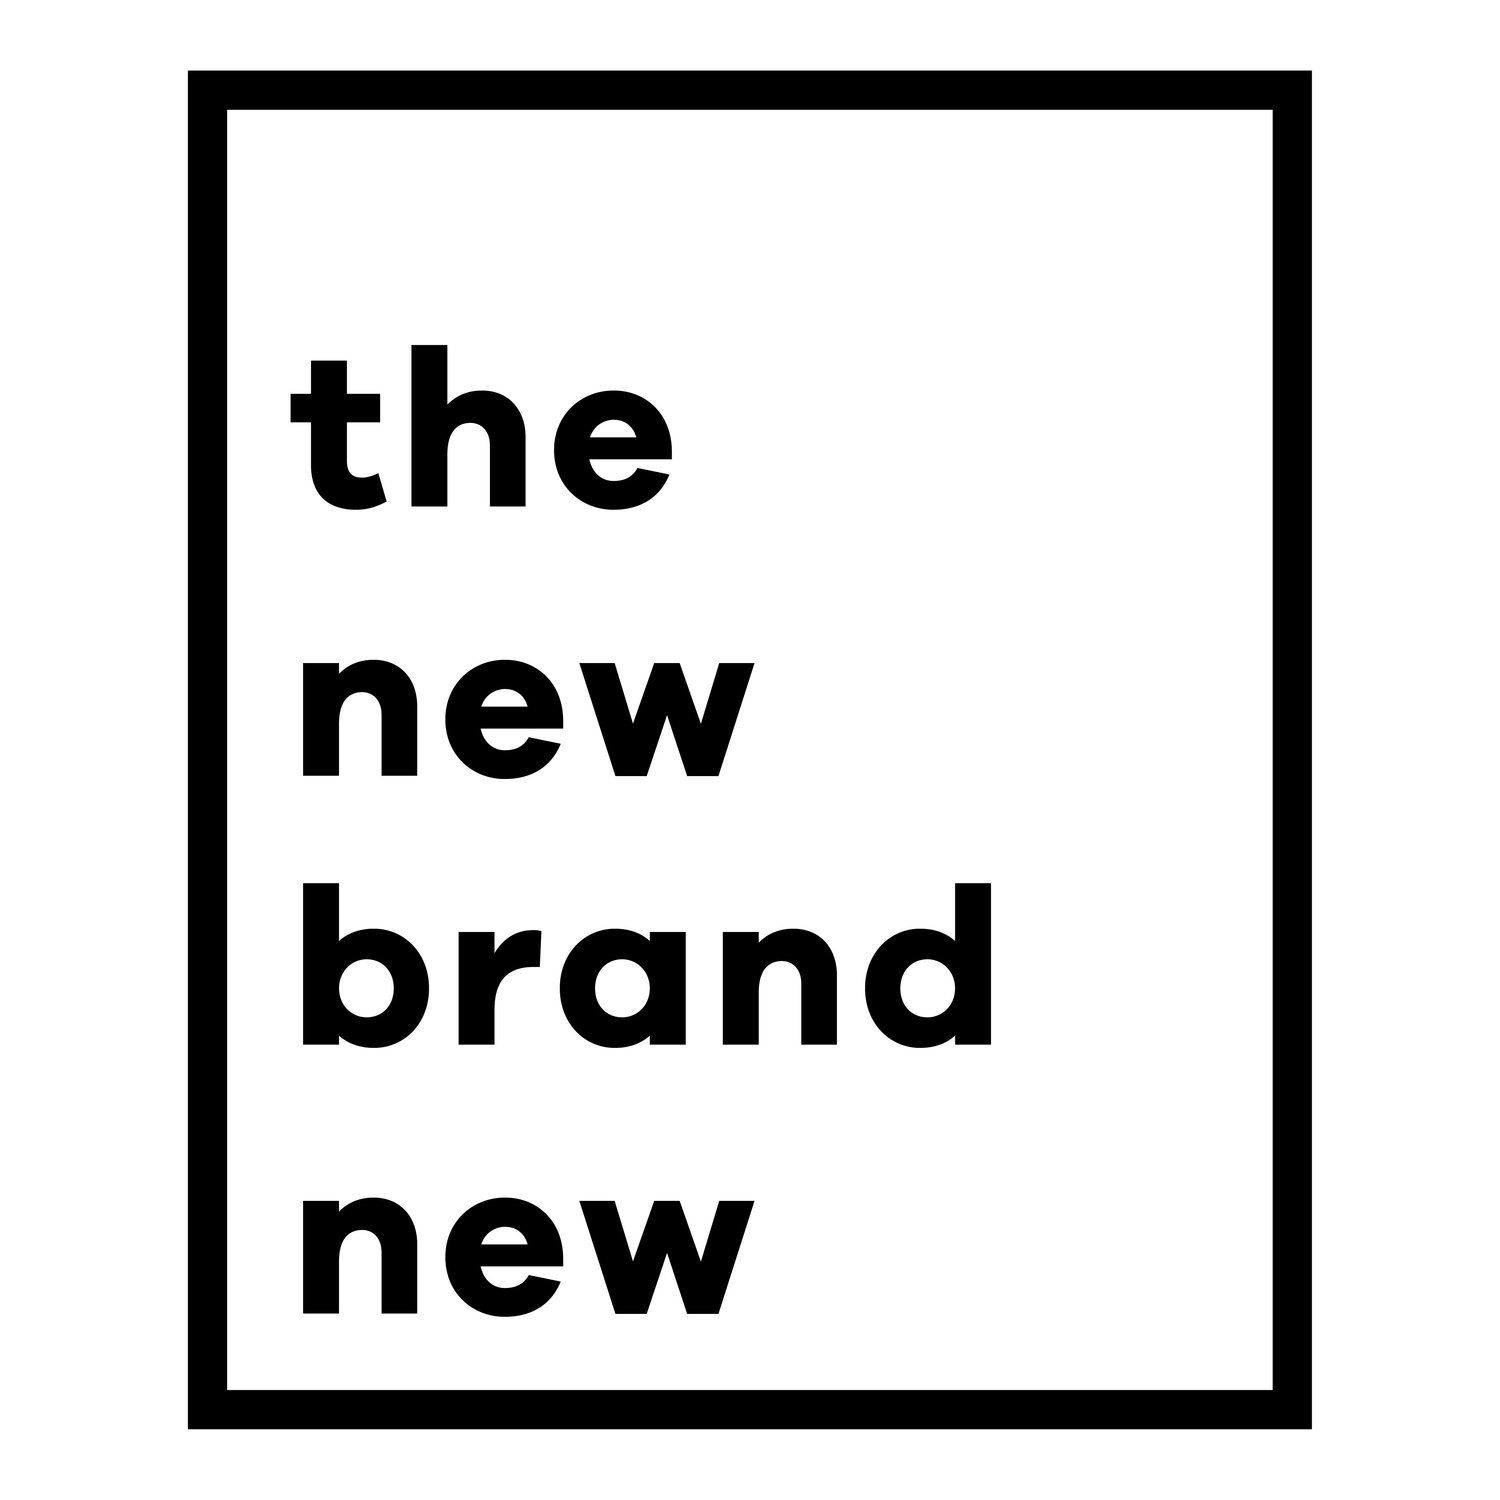 The new brand new